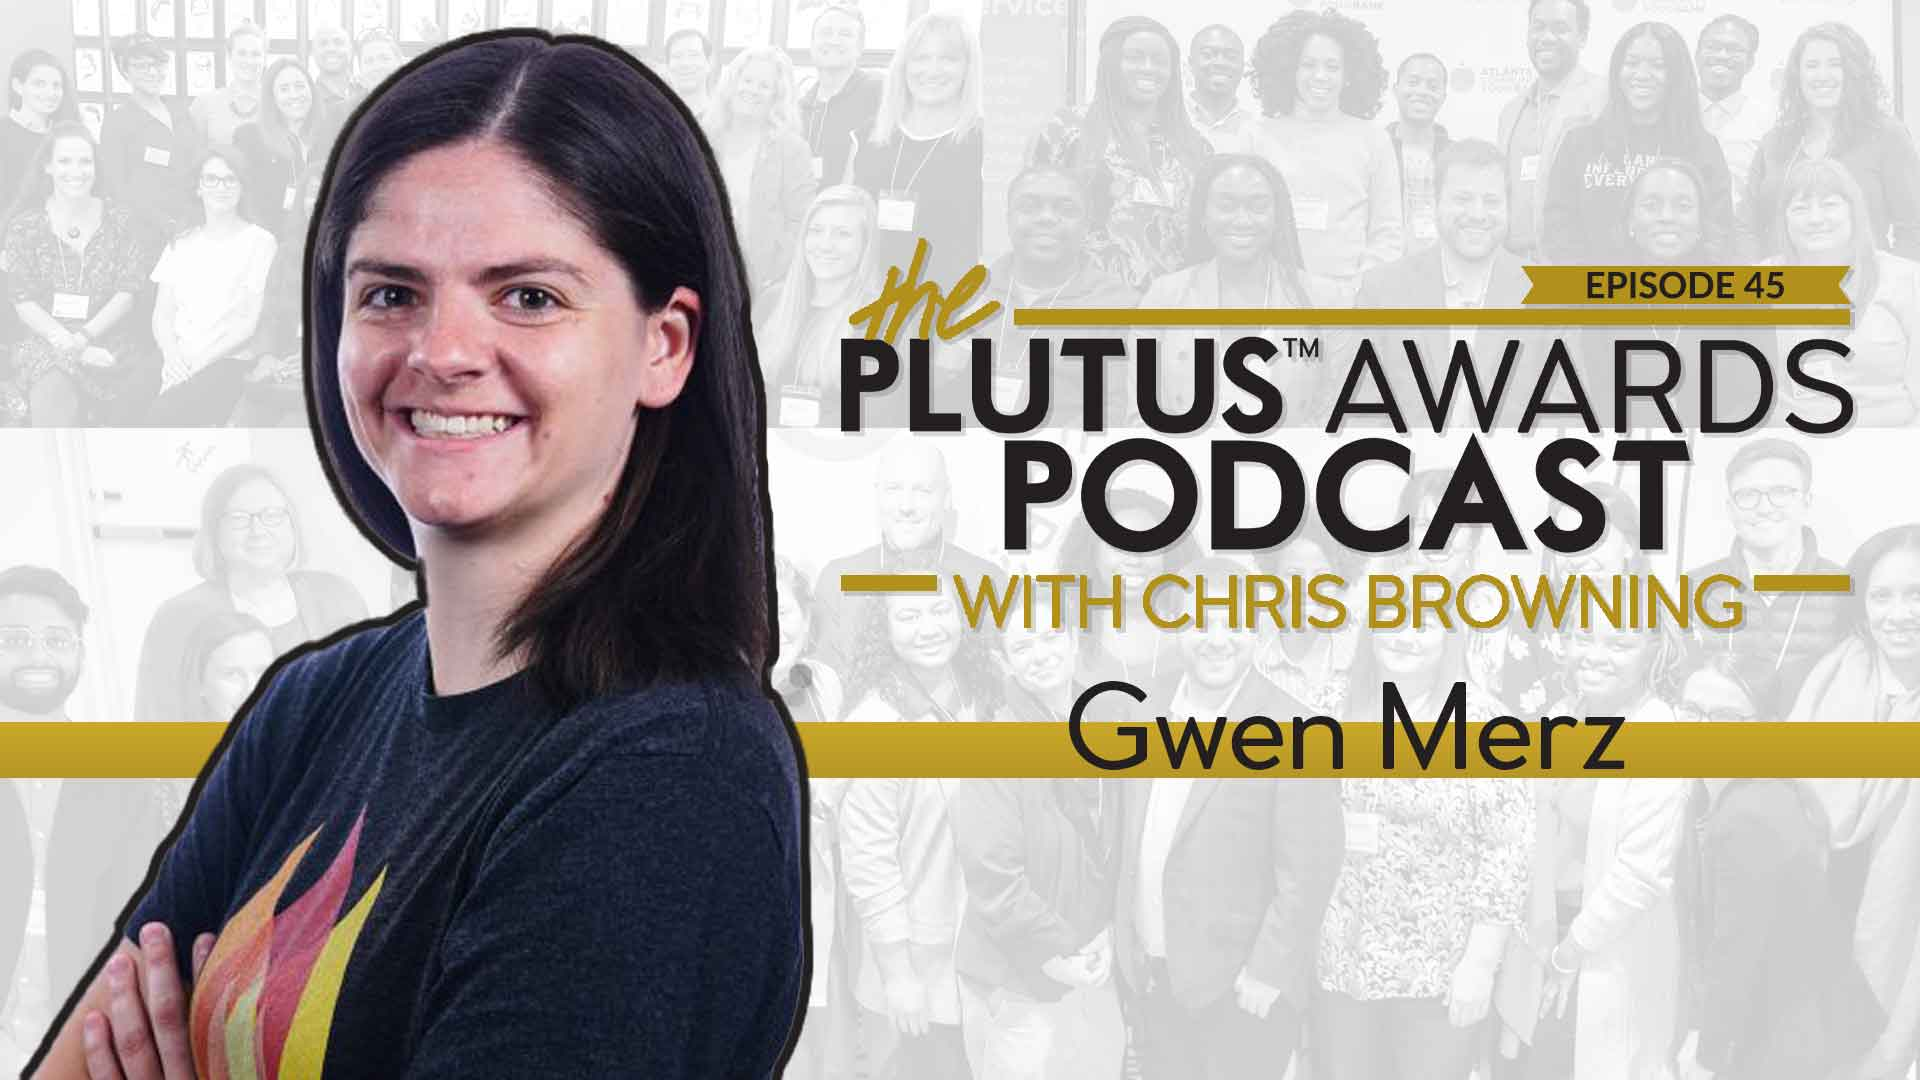 Plutus Awards Podcast Gwen Merz Featured Image